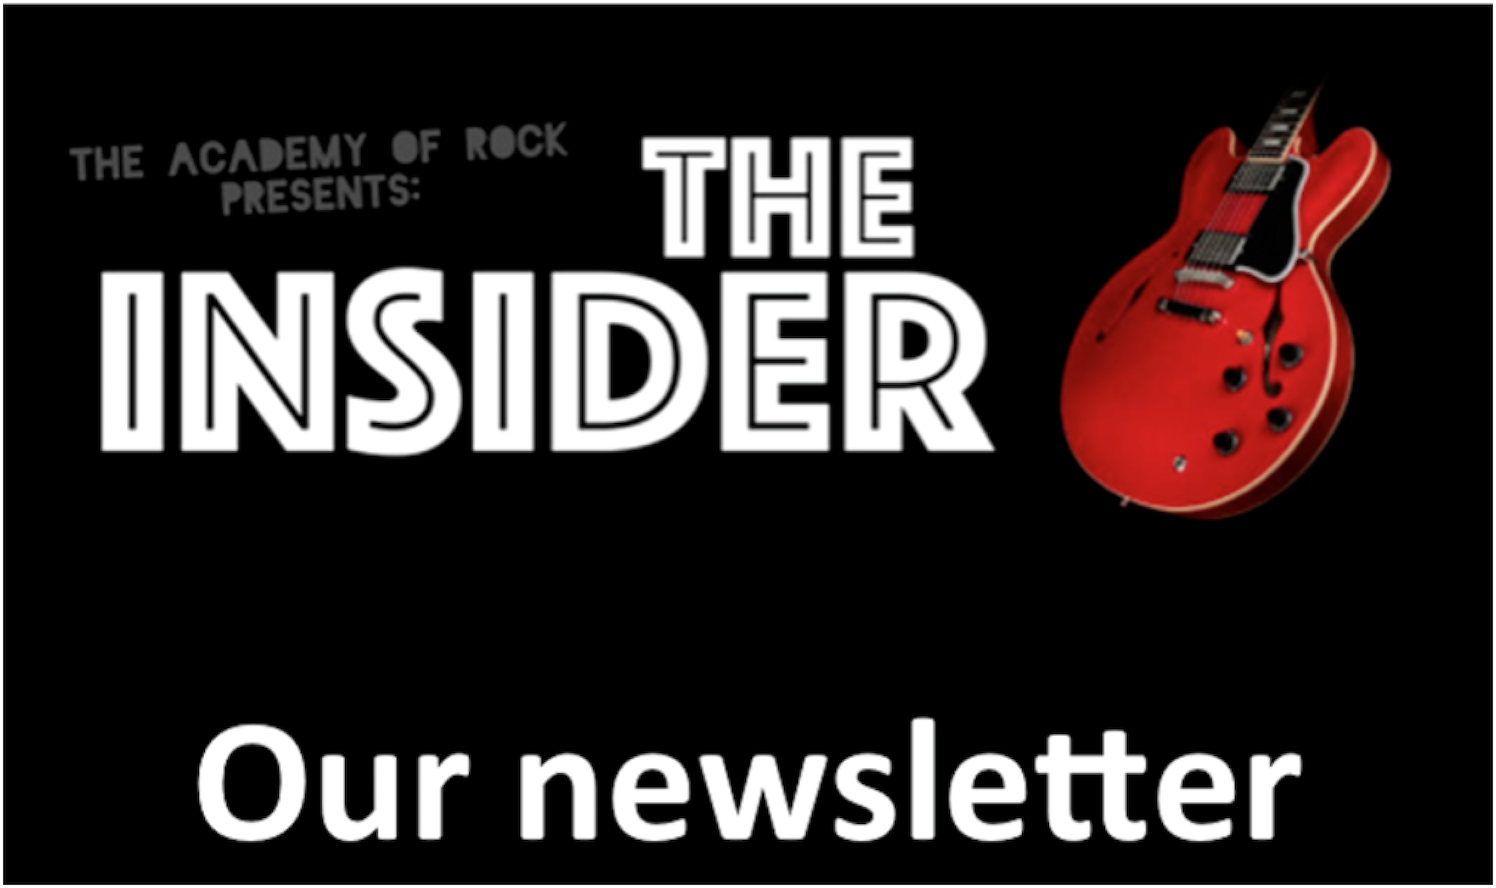 The Academy of Rock Newsletter